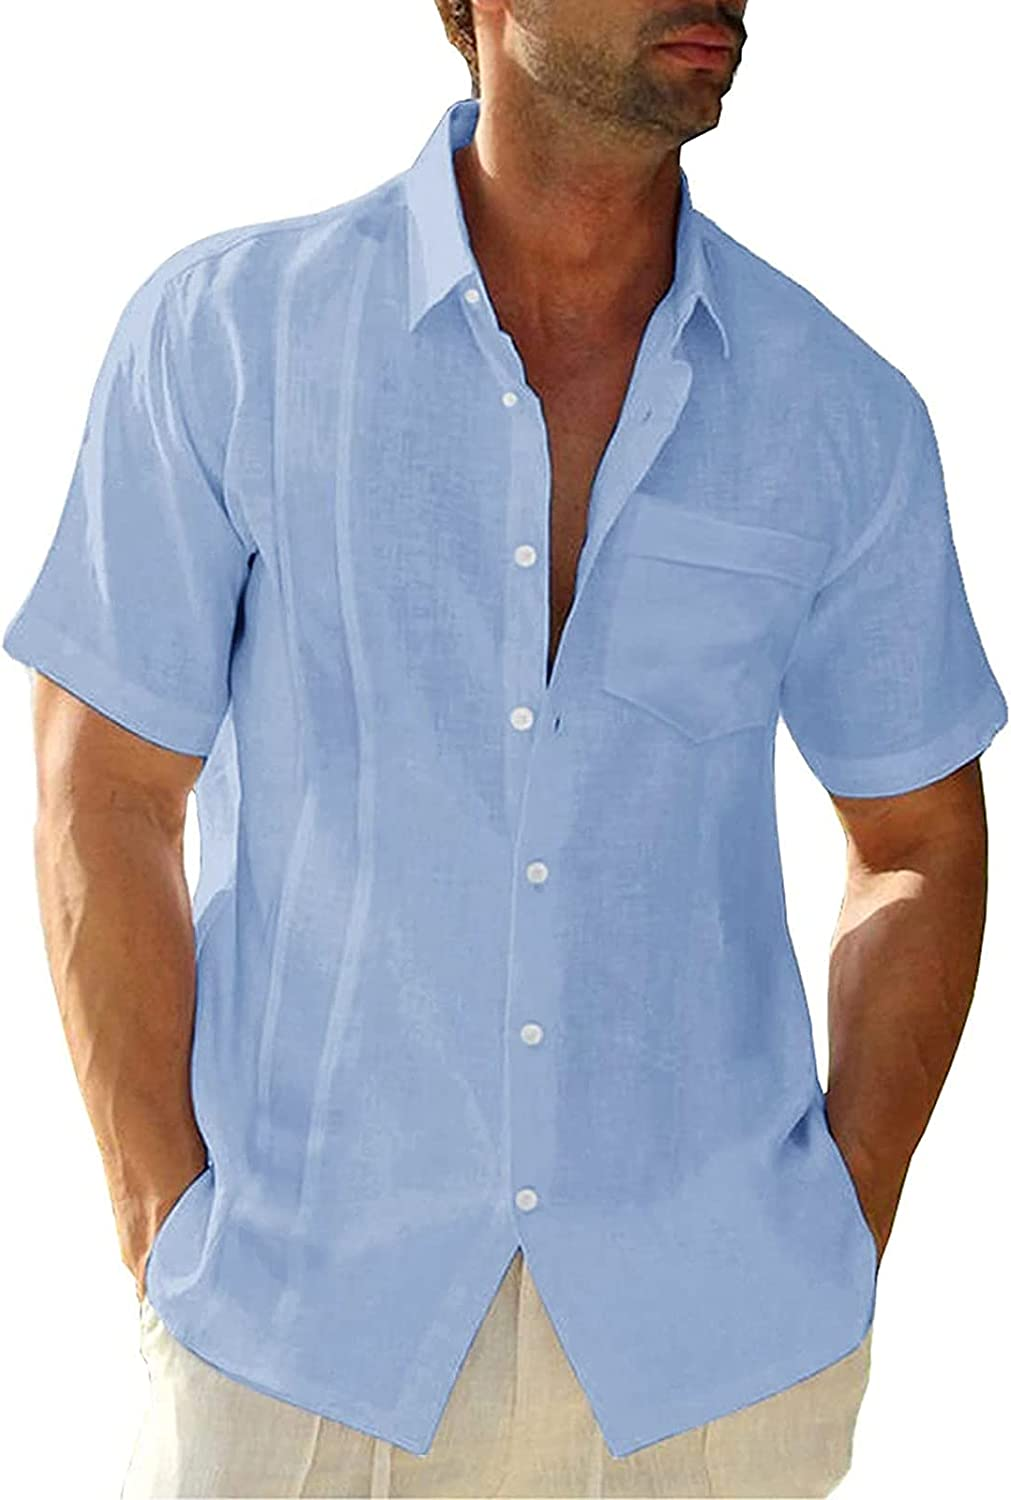 Cotton Linen Over item handling ☆ Shirts for Mens Button-down Clearance SALE Limited time Men's Henley Summer V